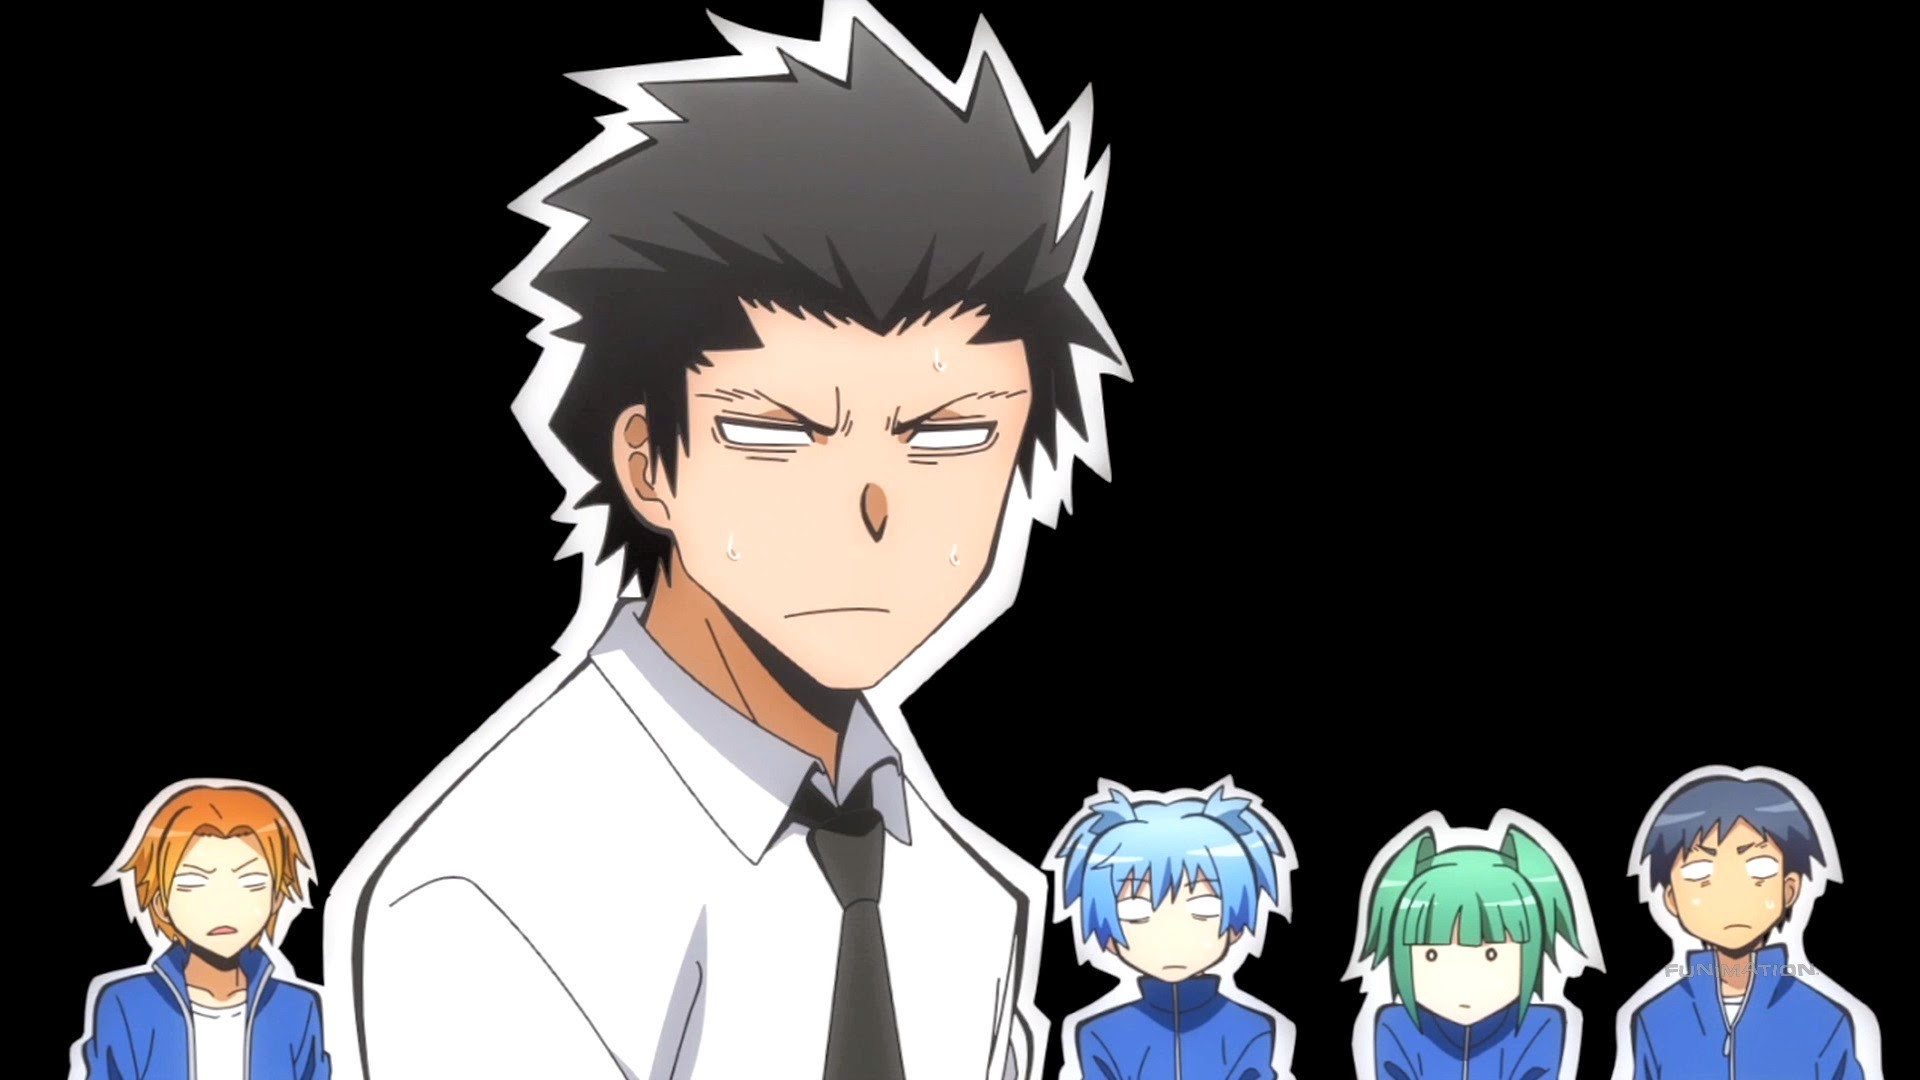 Assassination Classroom Wallpapers (79+ images)